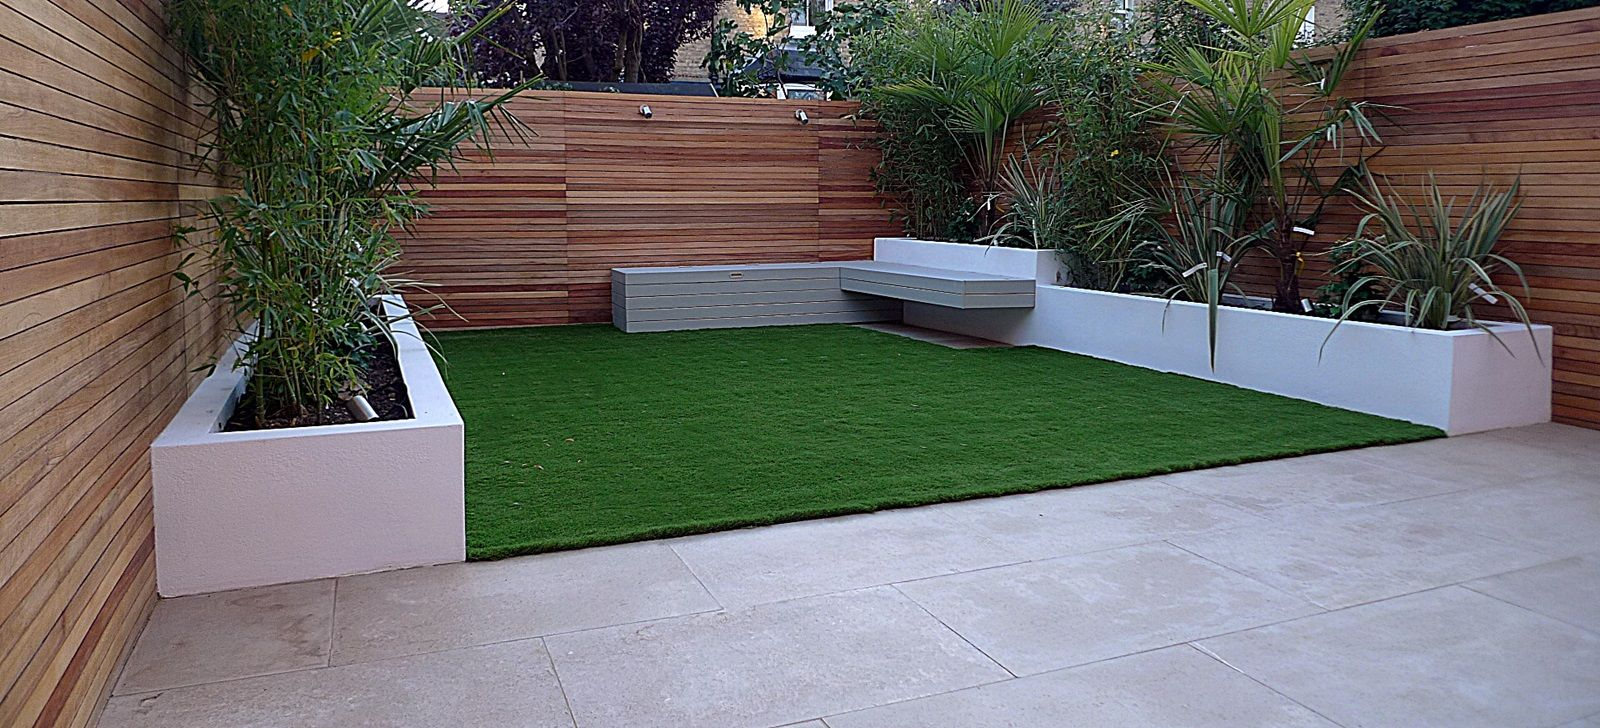 Modern Garden Design Raised Beds Hardwood Privacy Screen Ceadr